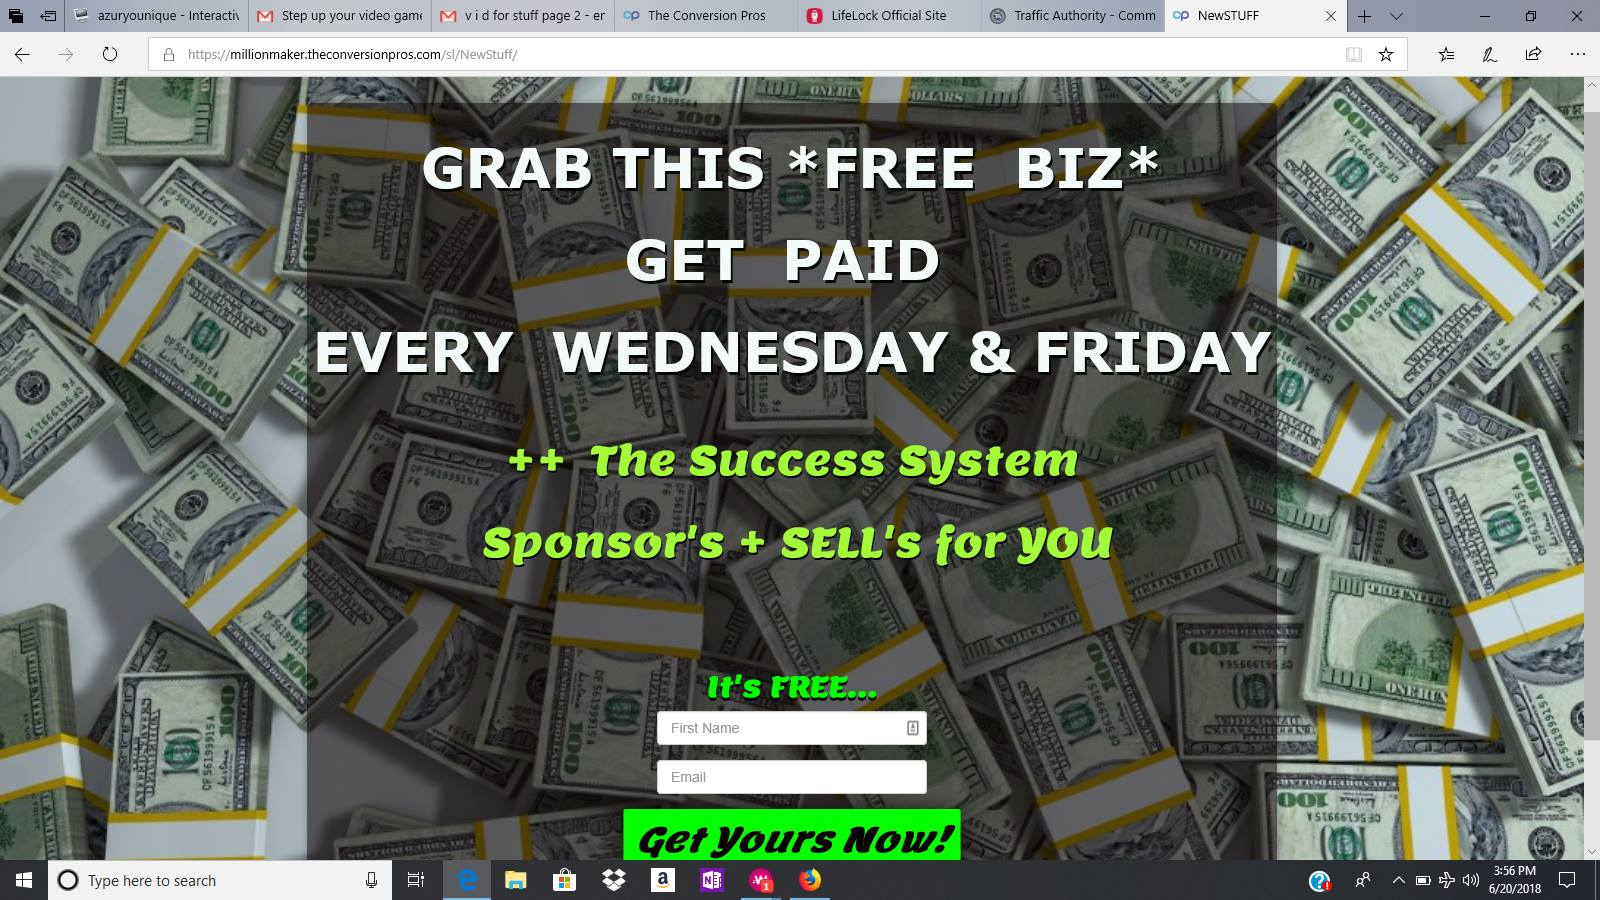 Grab This-FREE-Biz and get paid 3 Incomes per week! [Every Week]